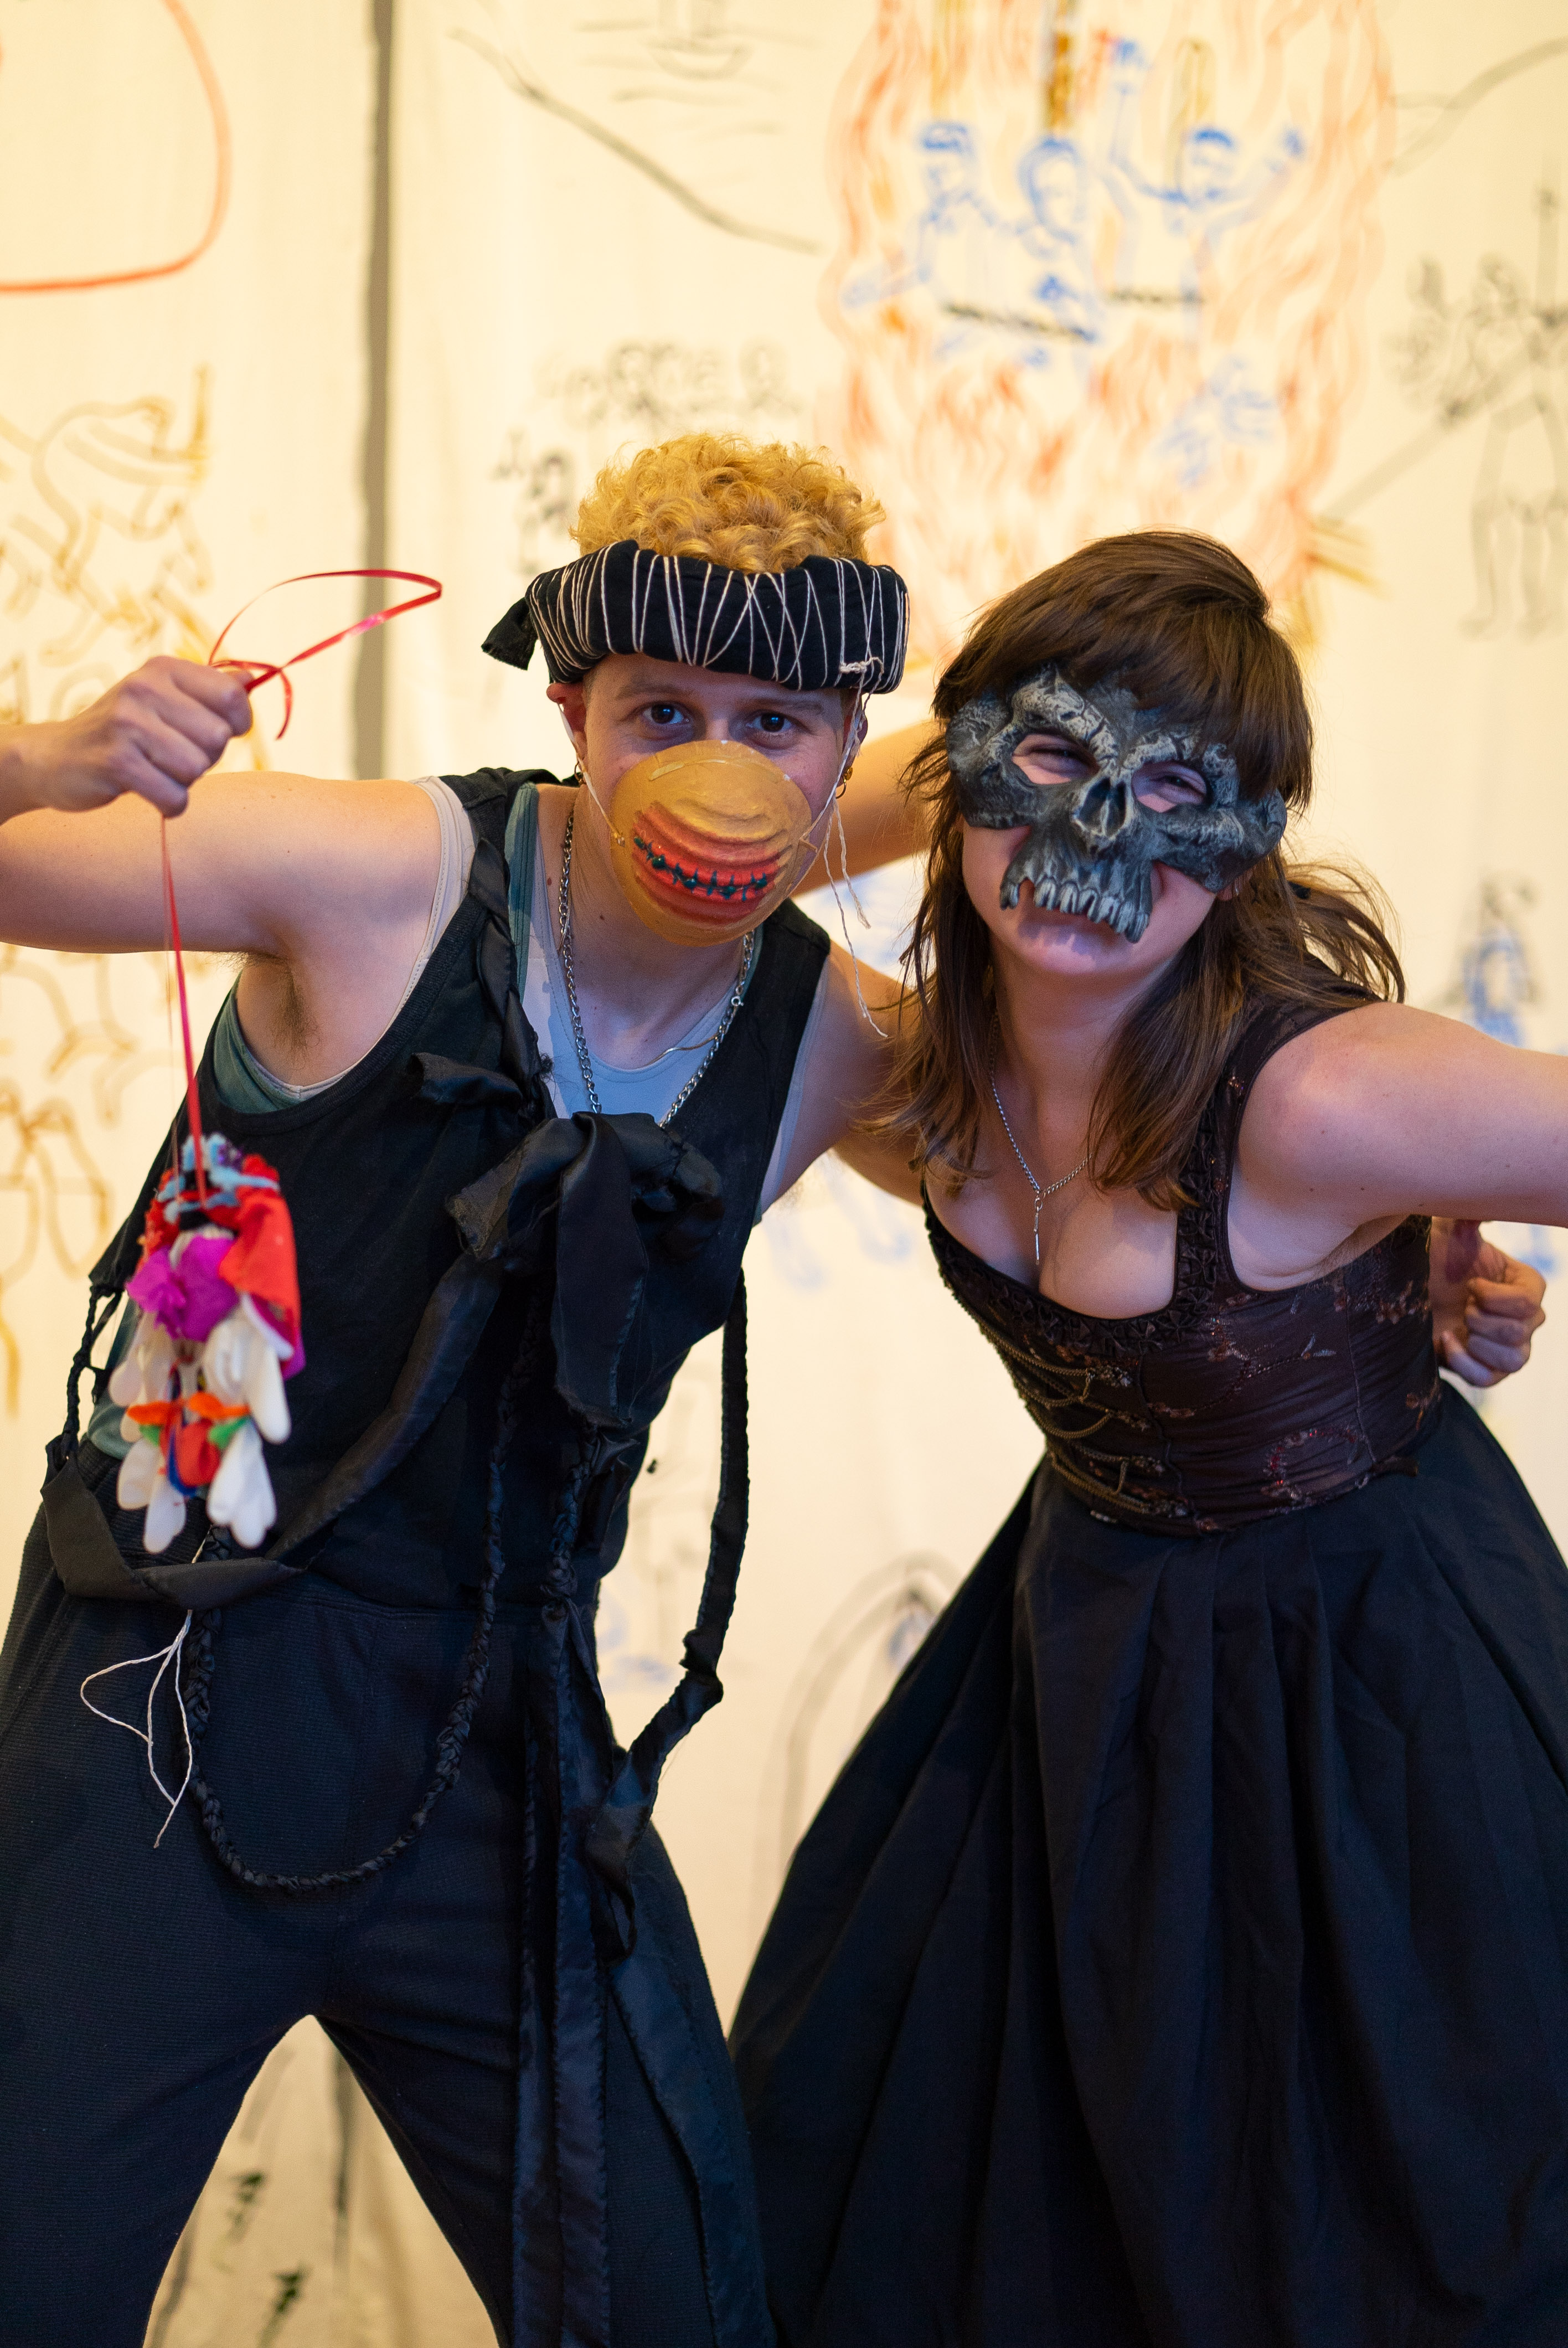 The photo shows two people in costumes posing on a stage. They have one arm around each other. The person on the left wears a patterned fabric ring as headgear, a painted protective mask that looks like a sewn up mouth, a black muscle shirt and black trousers. In their right hand they hold a self-made medallion in the air. The right person is wearing a skull mask and a dress that accentuates their cleavage. In the background hang banners made of antique white fabric with colourful medieval figurative paintings.